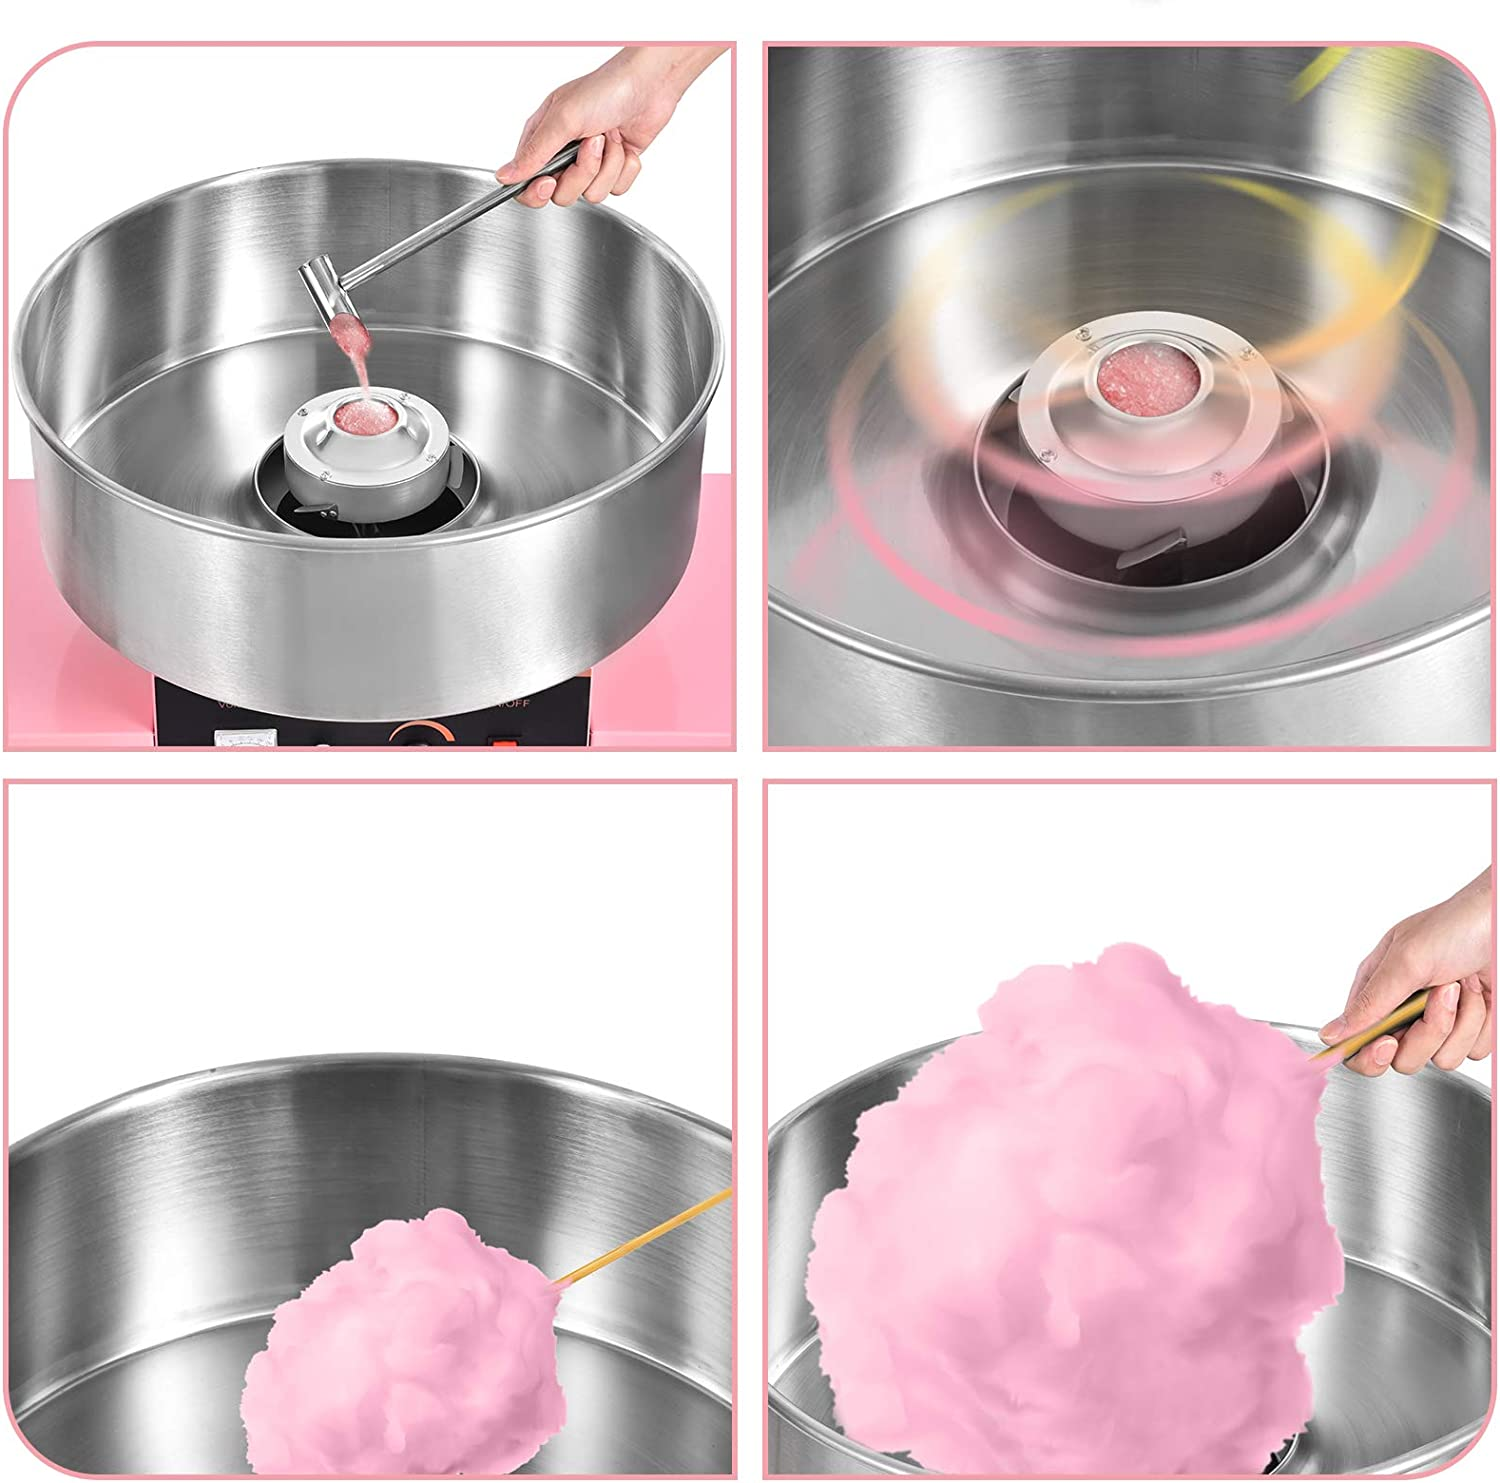 Ankishi Commercial Cotton Candy Machine with Cart 20.5 Inch Stainless Steel Electric Candy Floss Maker for Various Parties